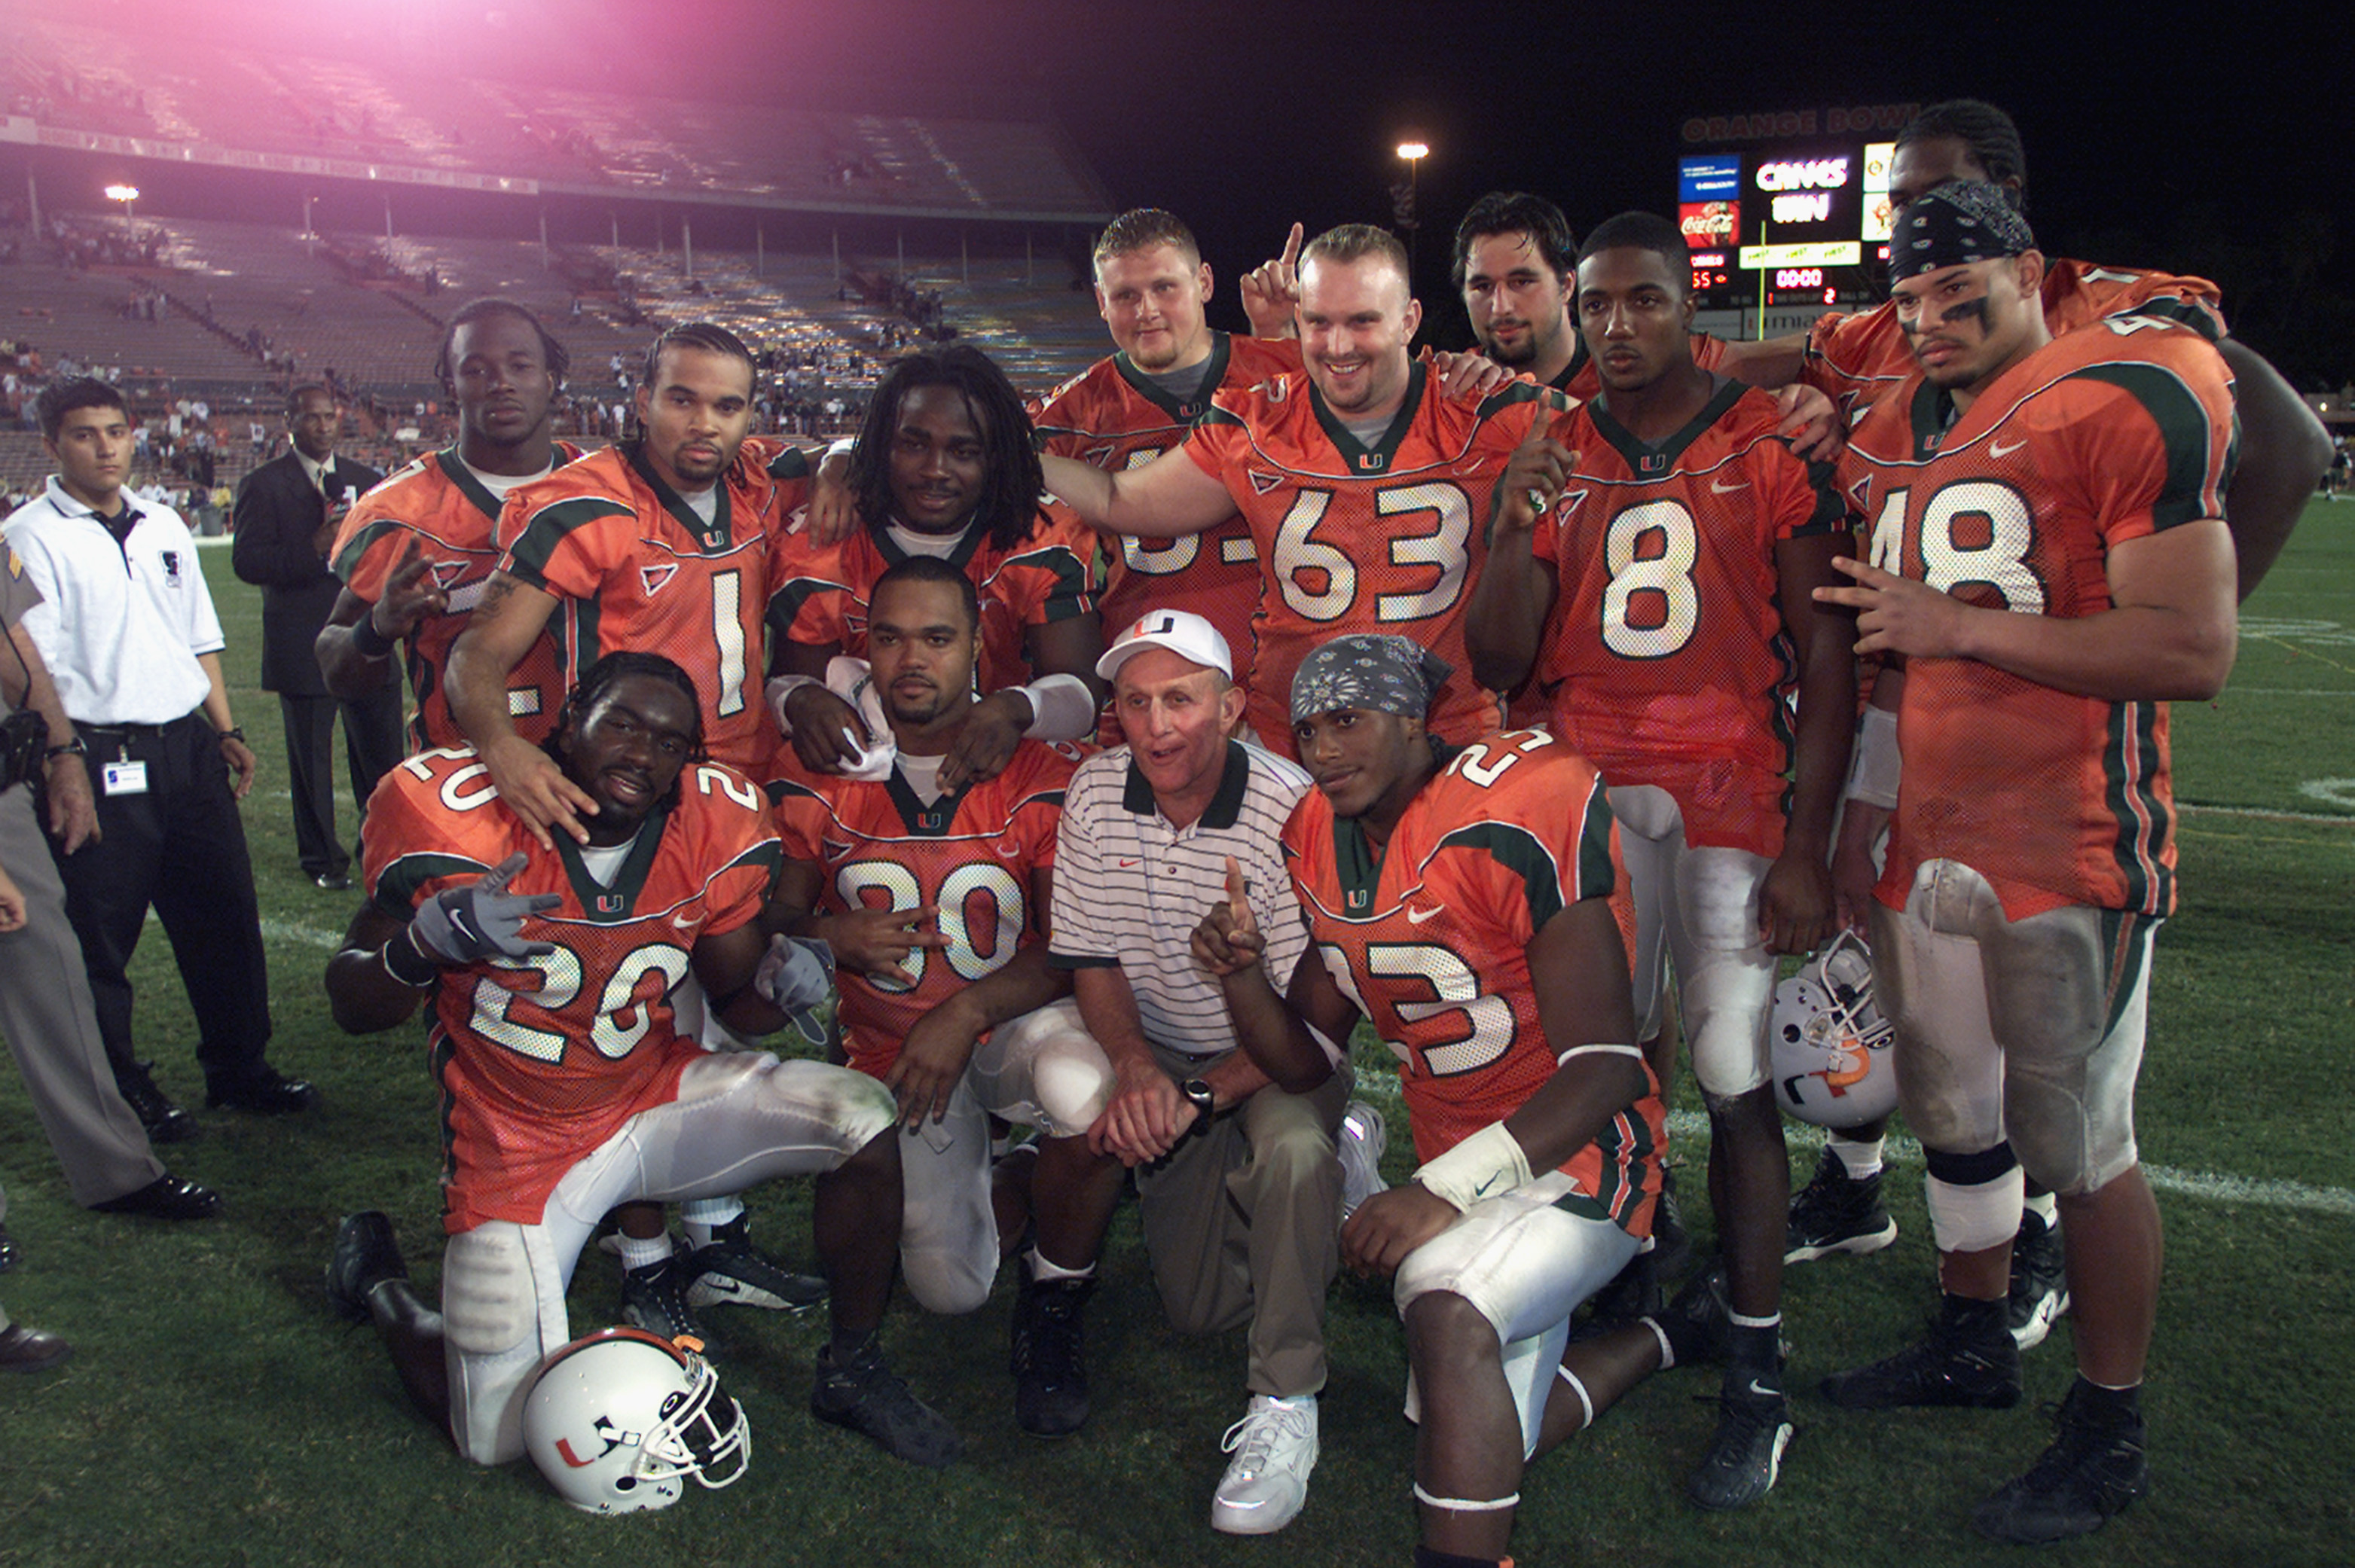 MIAMI - NOVEMBER 24:  Head Coach Larry Coker of the Miami Hurricanes is surrounded by his team as they pose for a photo after the game against the Washington Huskies at the Orange Bowl in Miami, Florida on November 24, 2001.  Miami crushed Washington 65-7